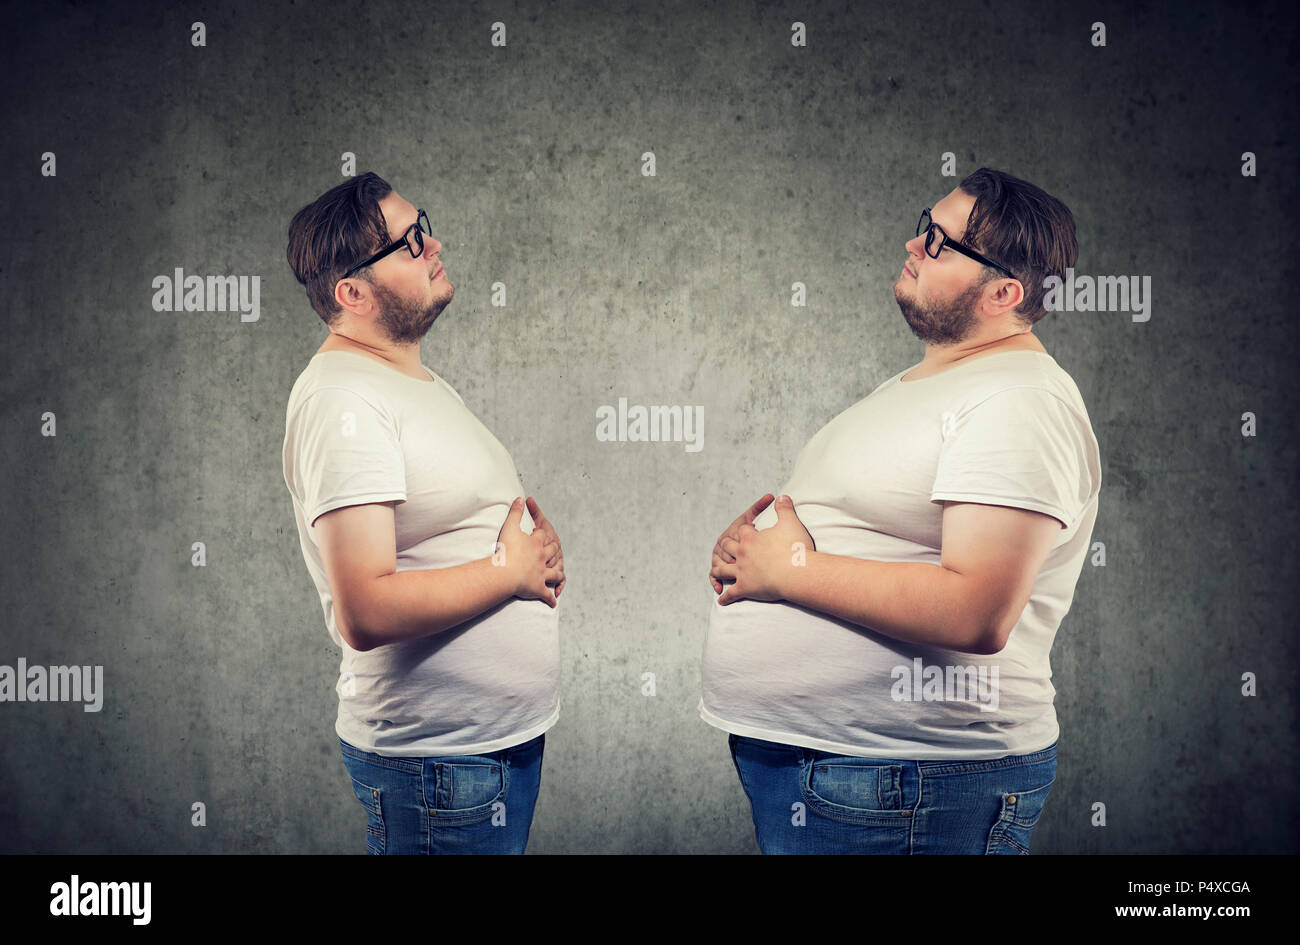 Young chubby man looking at fat himself feeling bloated. Diet and nutrition choice  healthy lifestyle concept - Stock Image